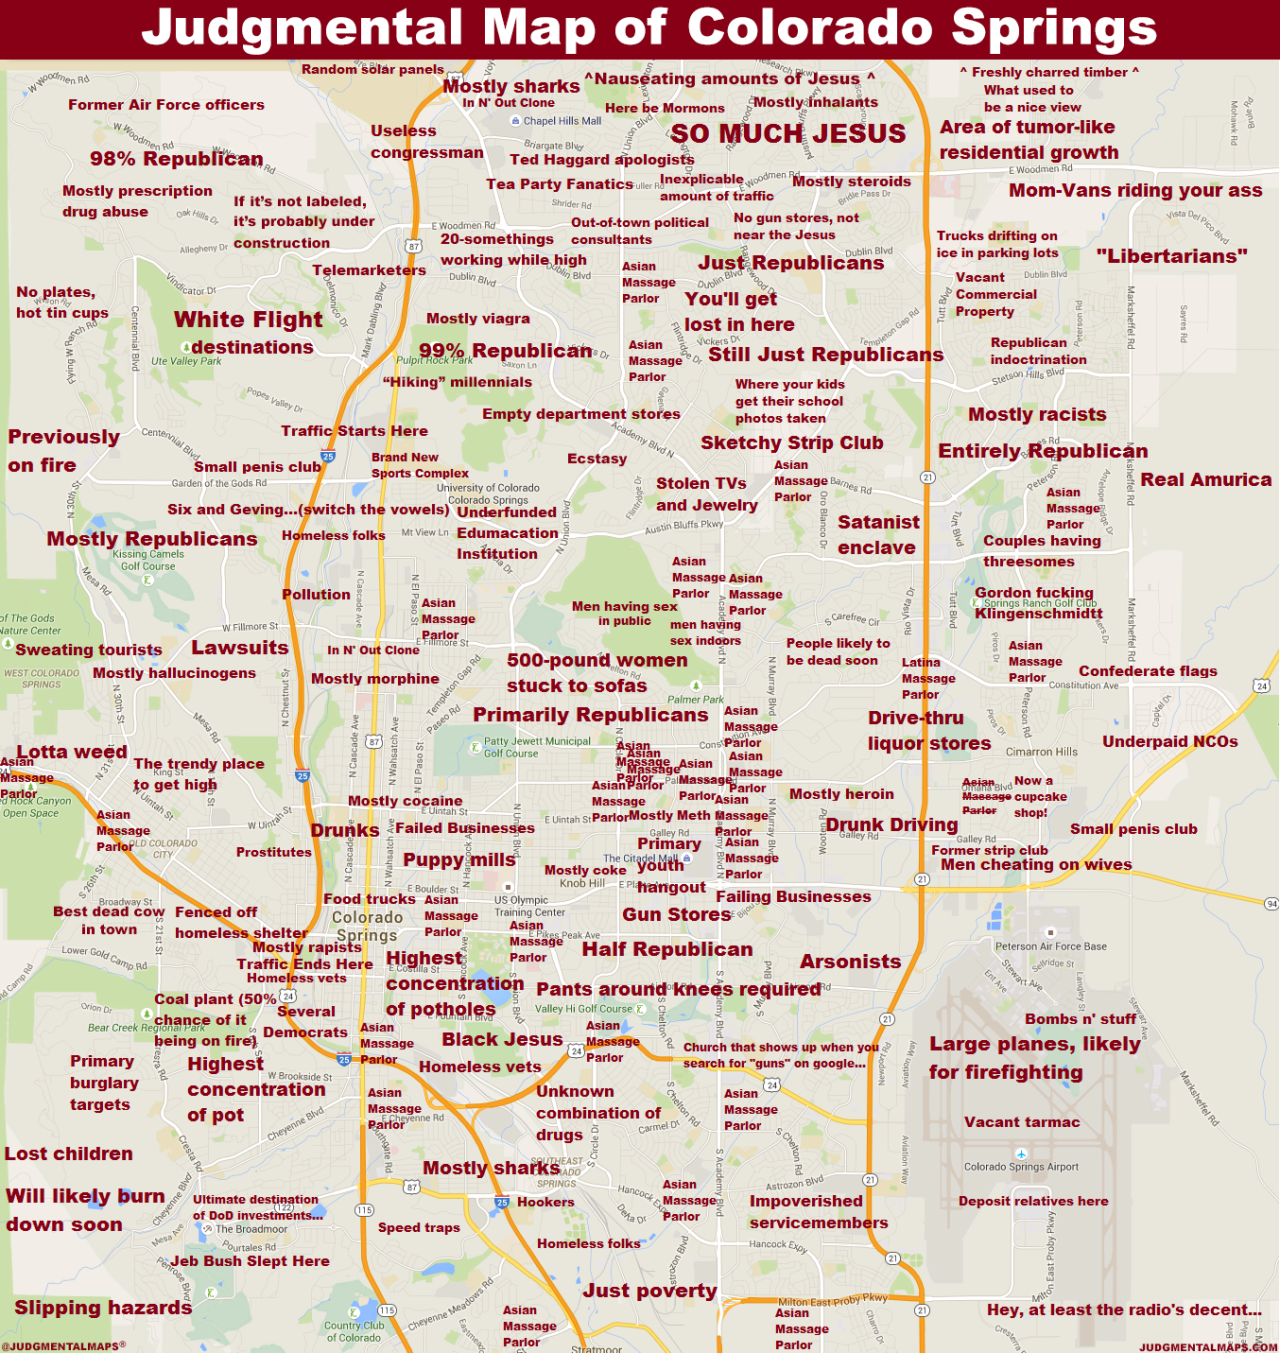 Awesome Judgmental Austin Map Photos - Printable Map - New ...